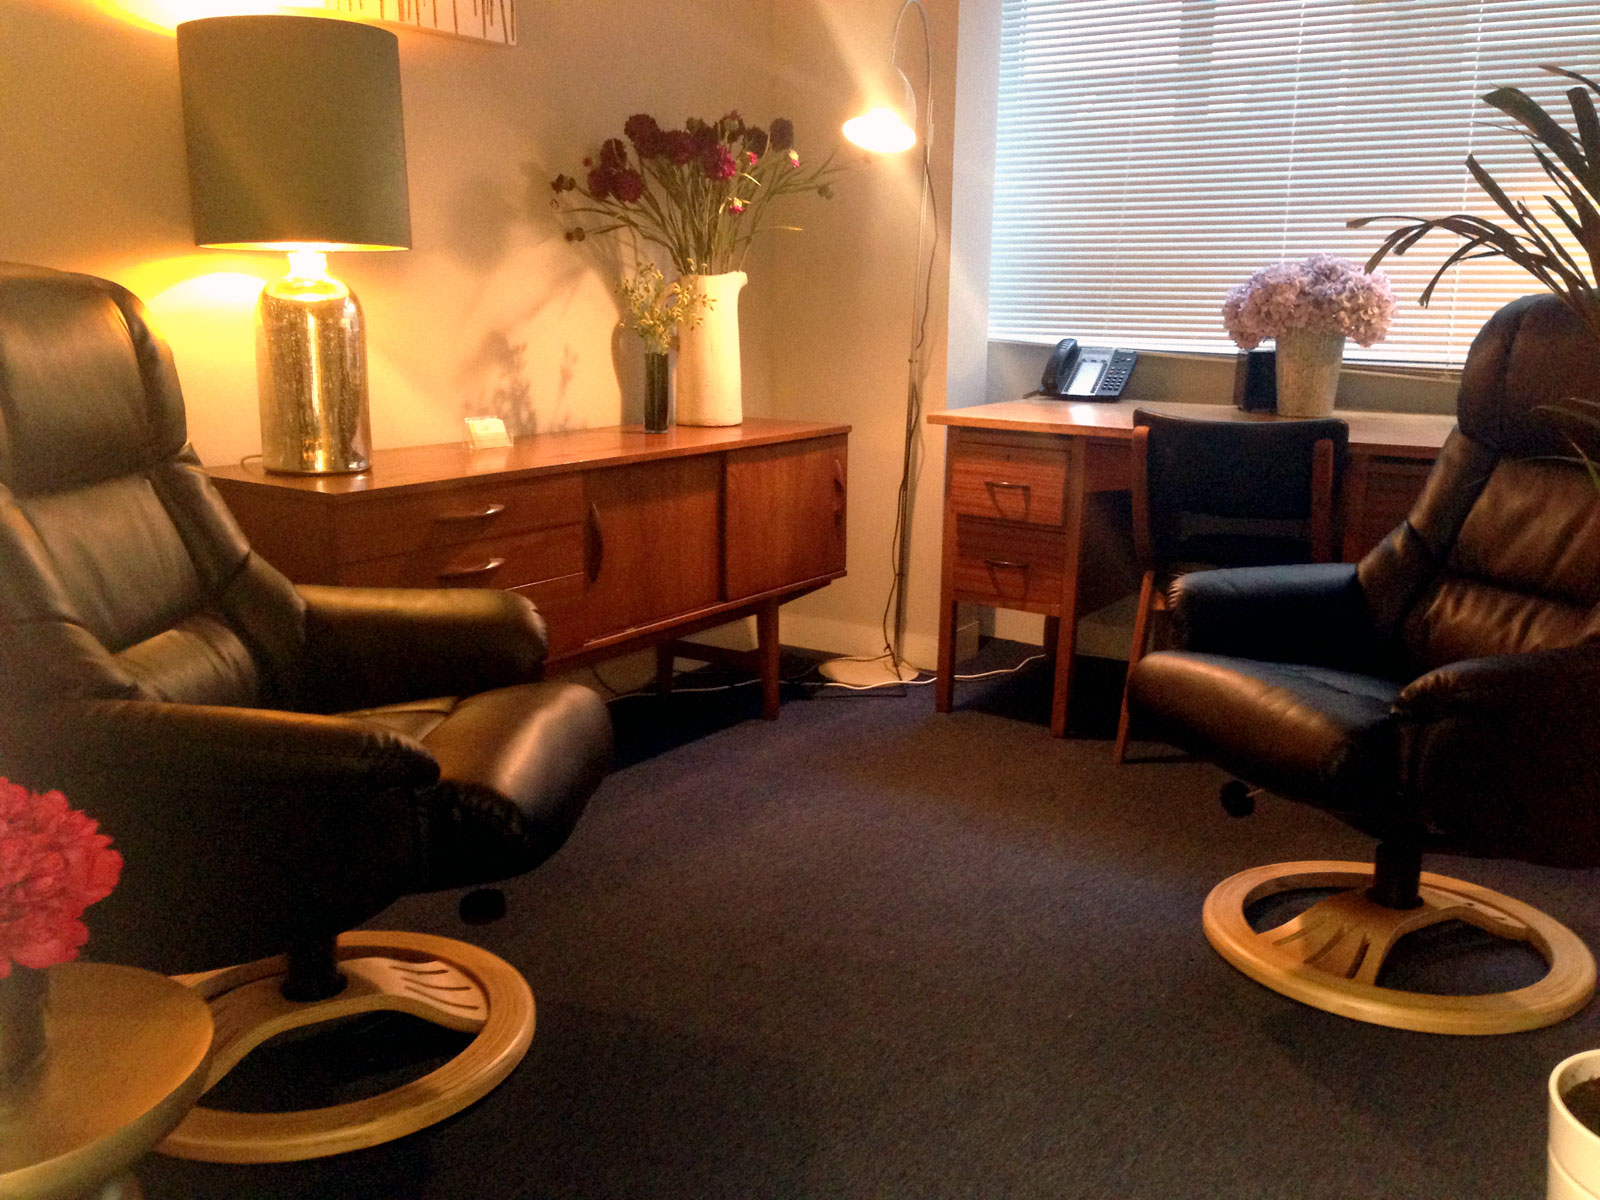 The Therapy Room at the Liverpool Street Clinic